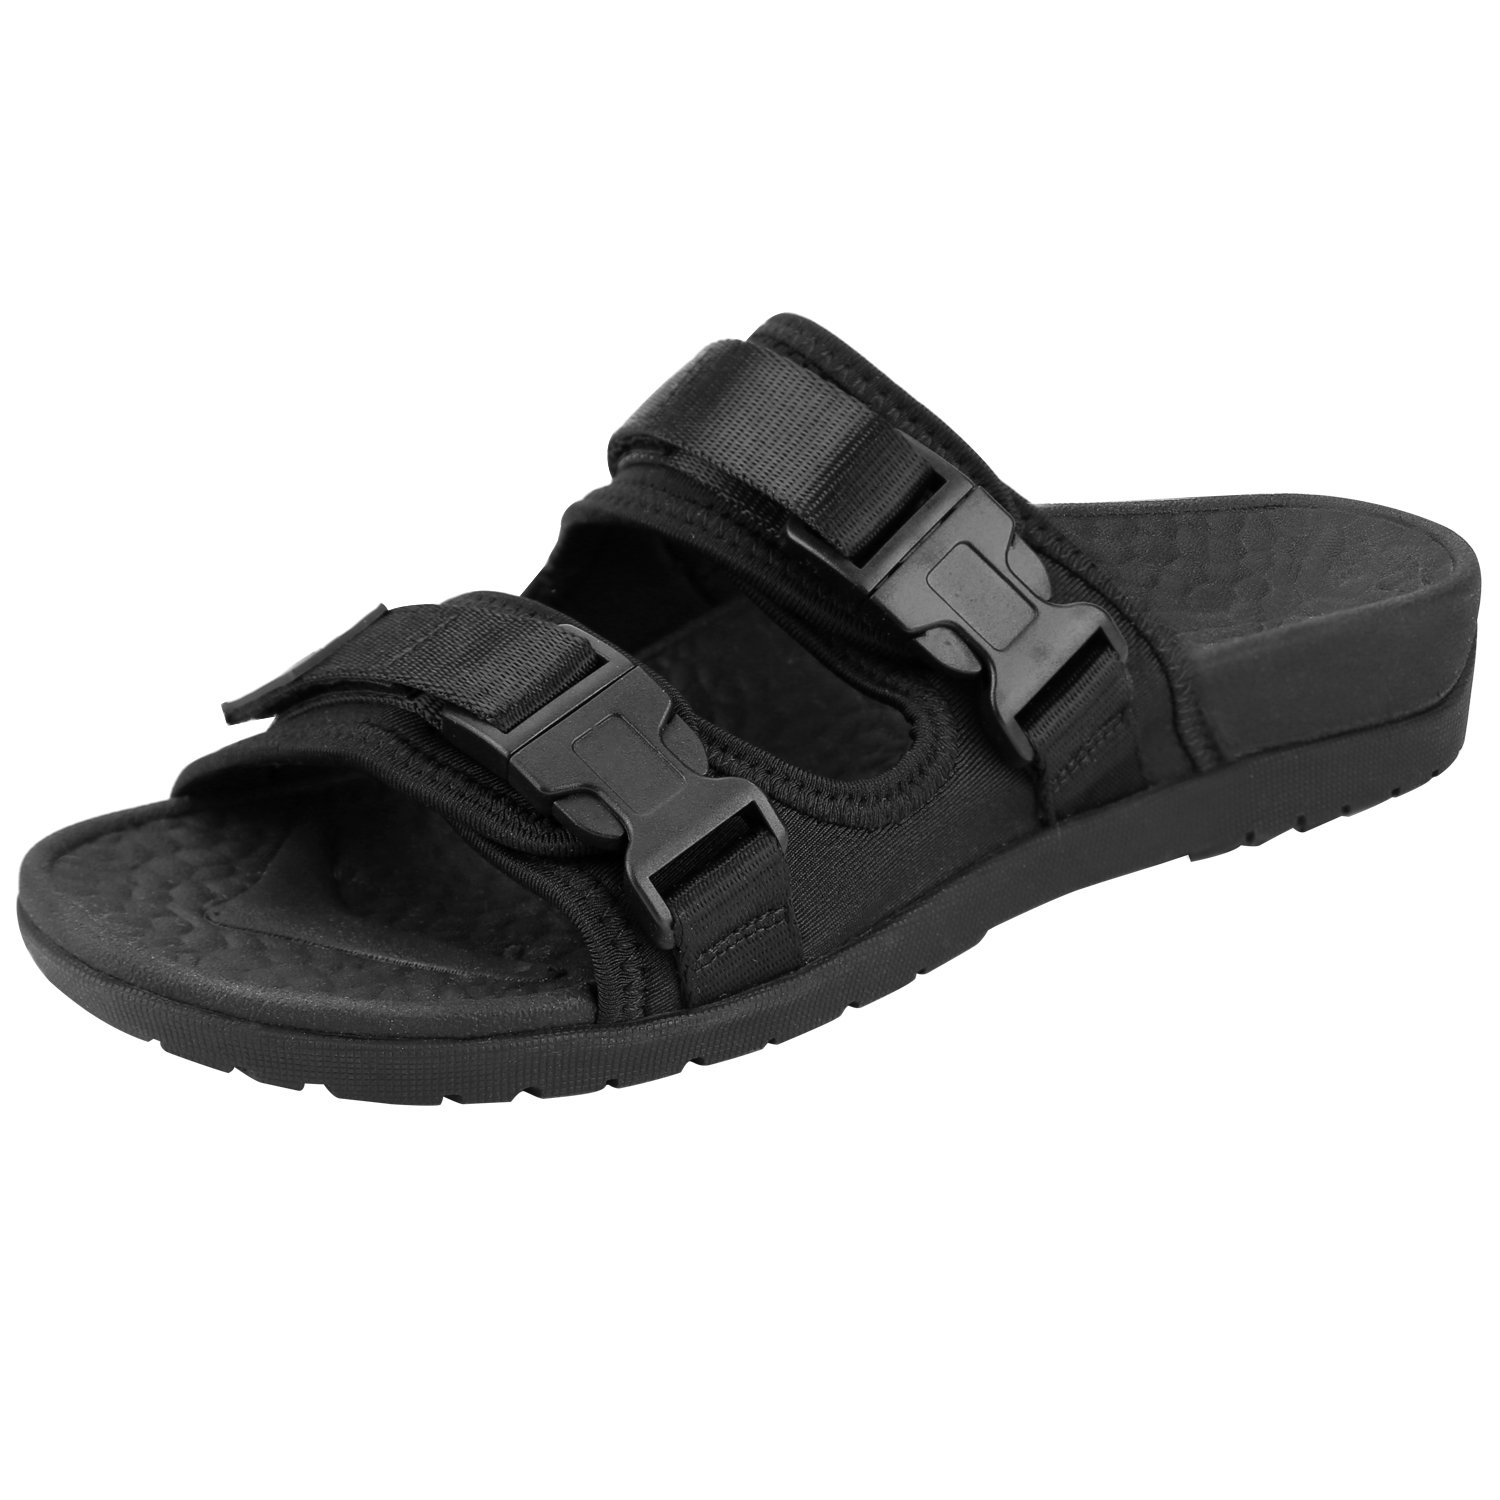 3382c618c4f5 Amazon.com  Everhealth Orthotic Sandal Women Buckle Slide Sandals Peep Toe  Outdoor Slippers with Arch Support for Plantar Fasciitis  Shoes